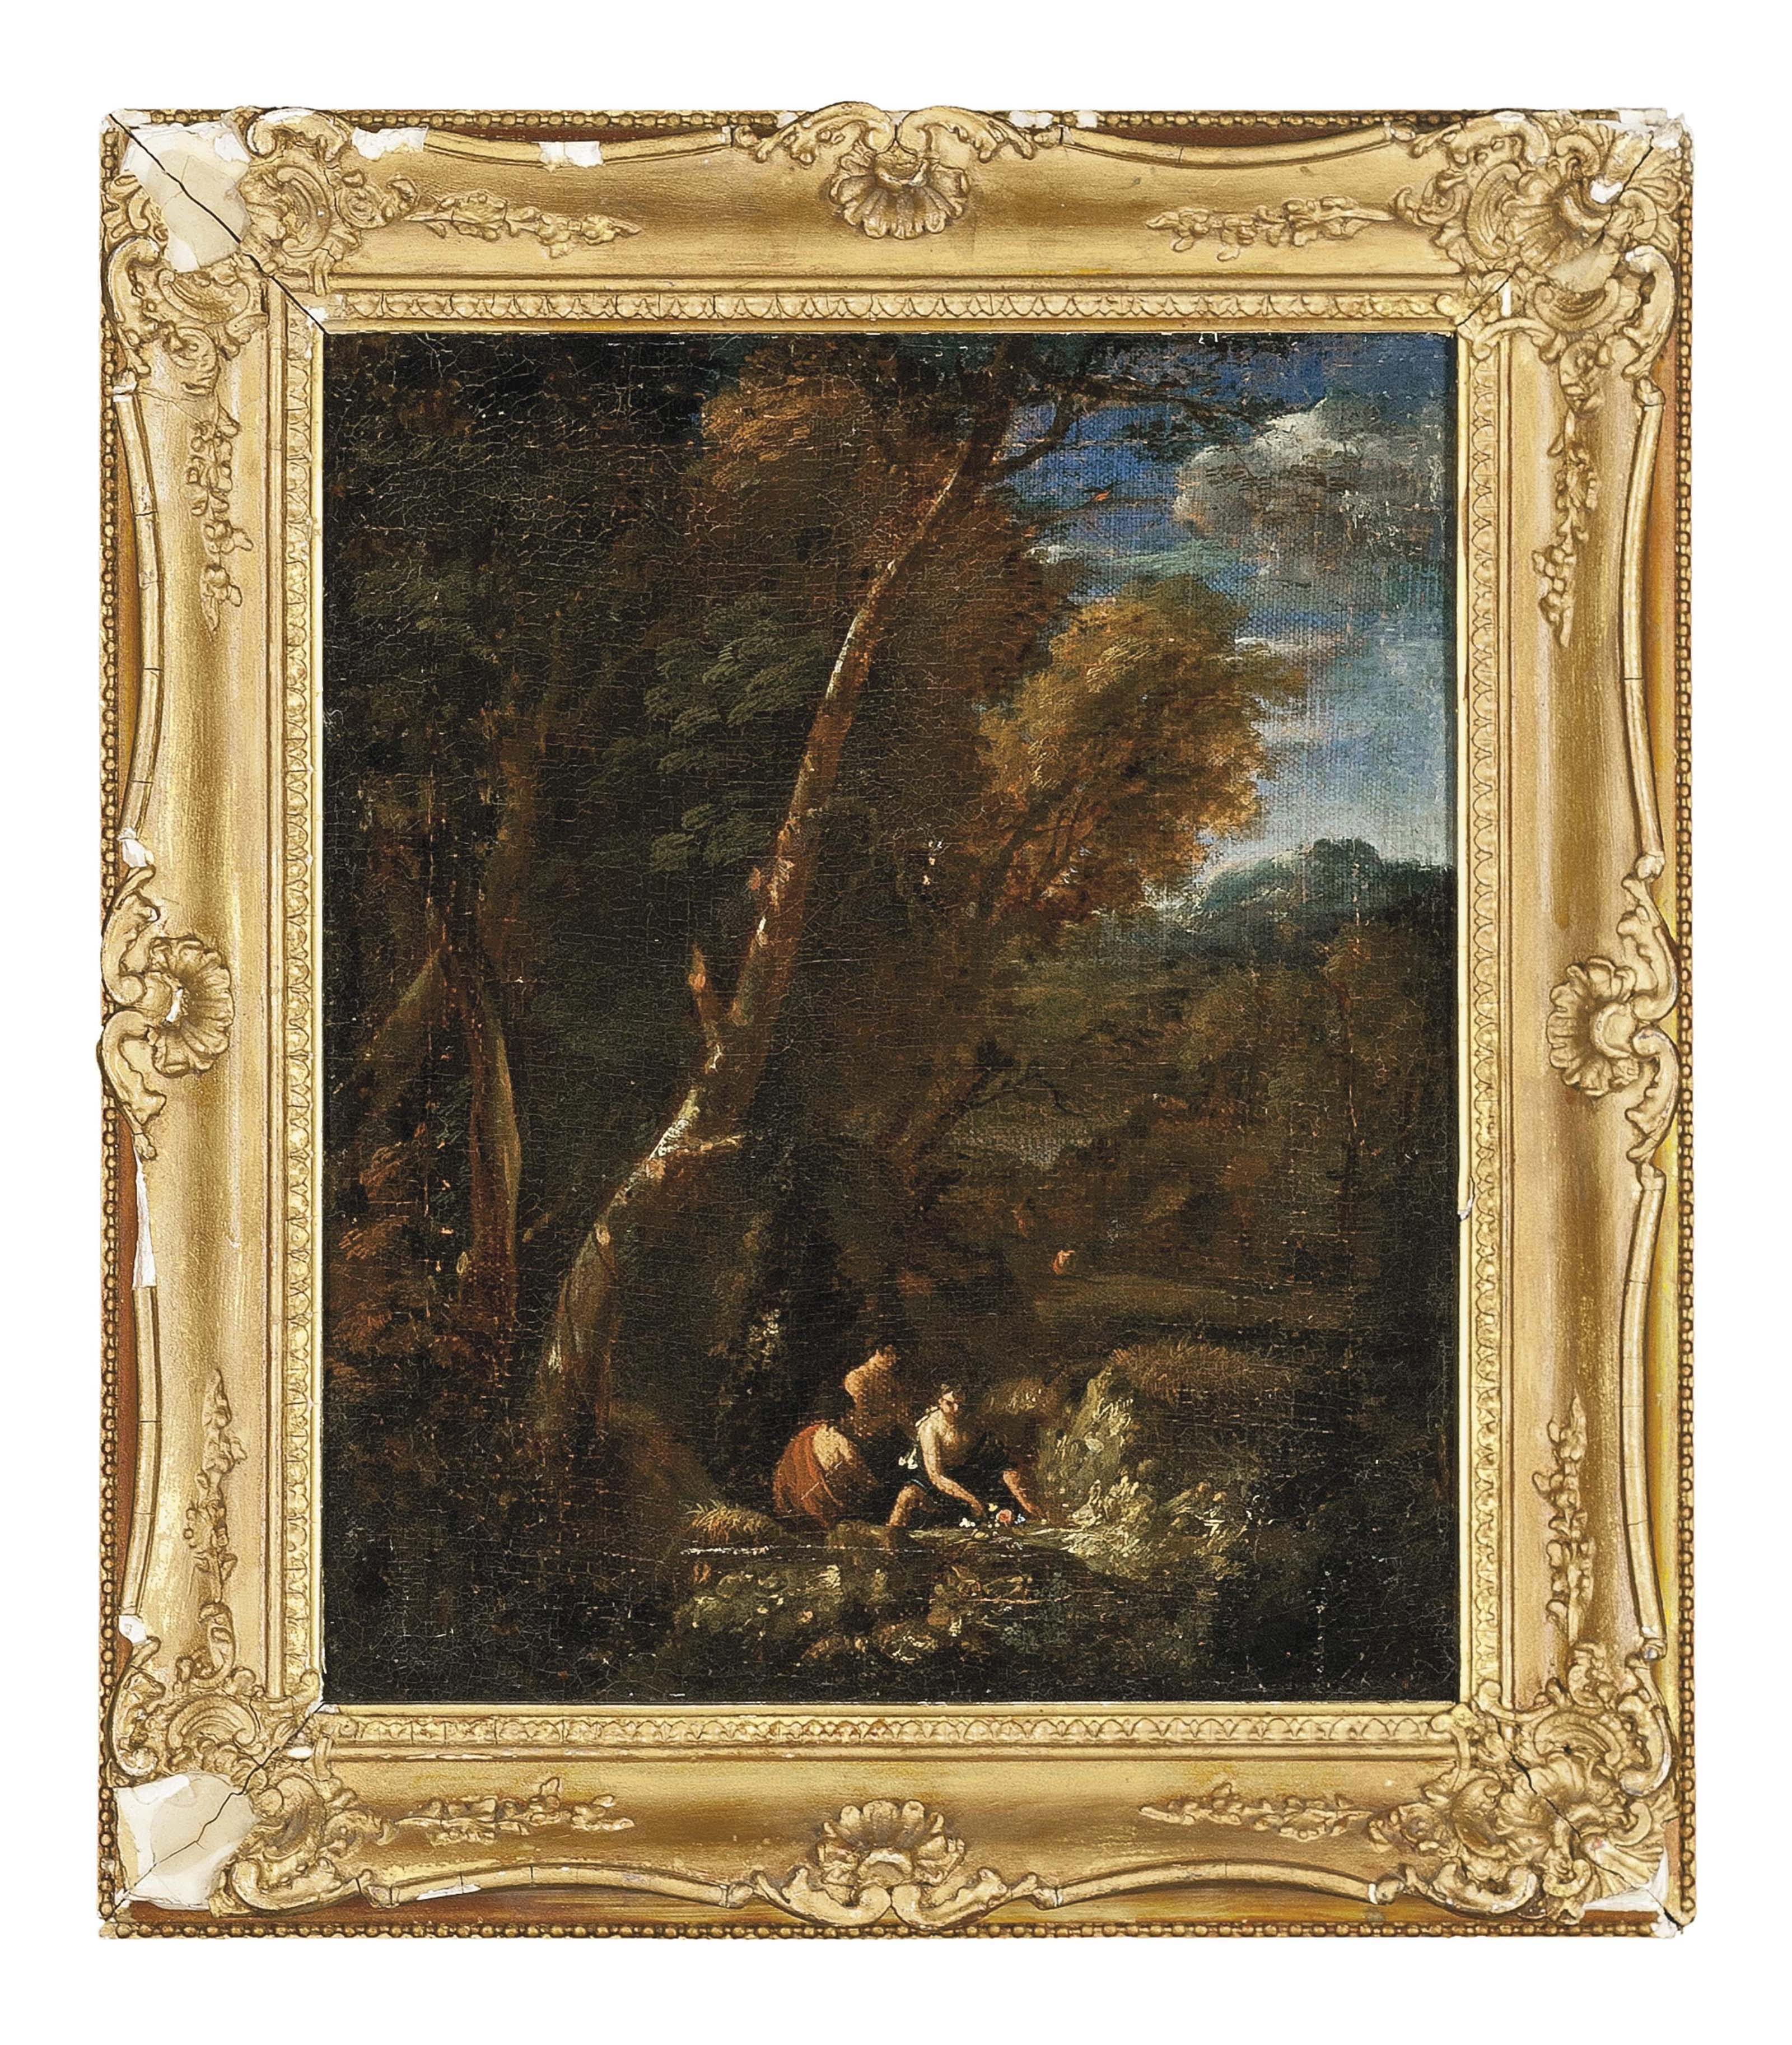 A wooded landscape with classical figures